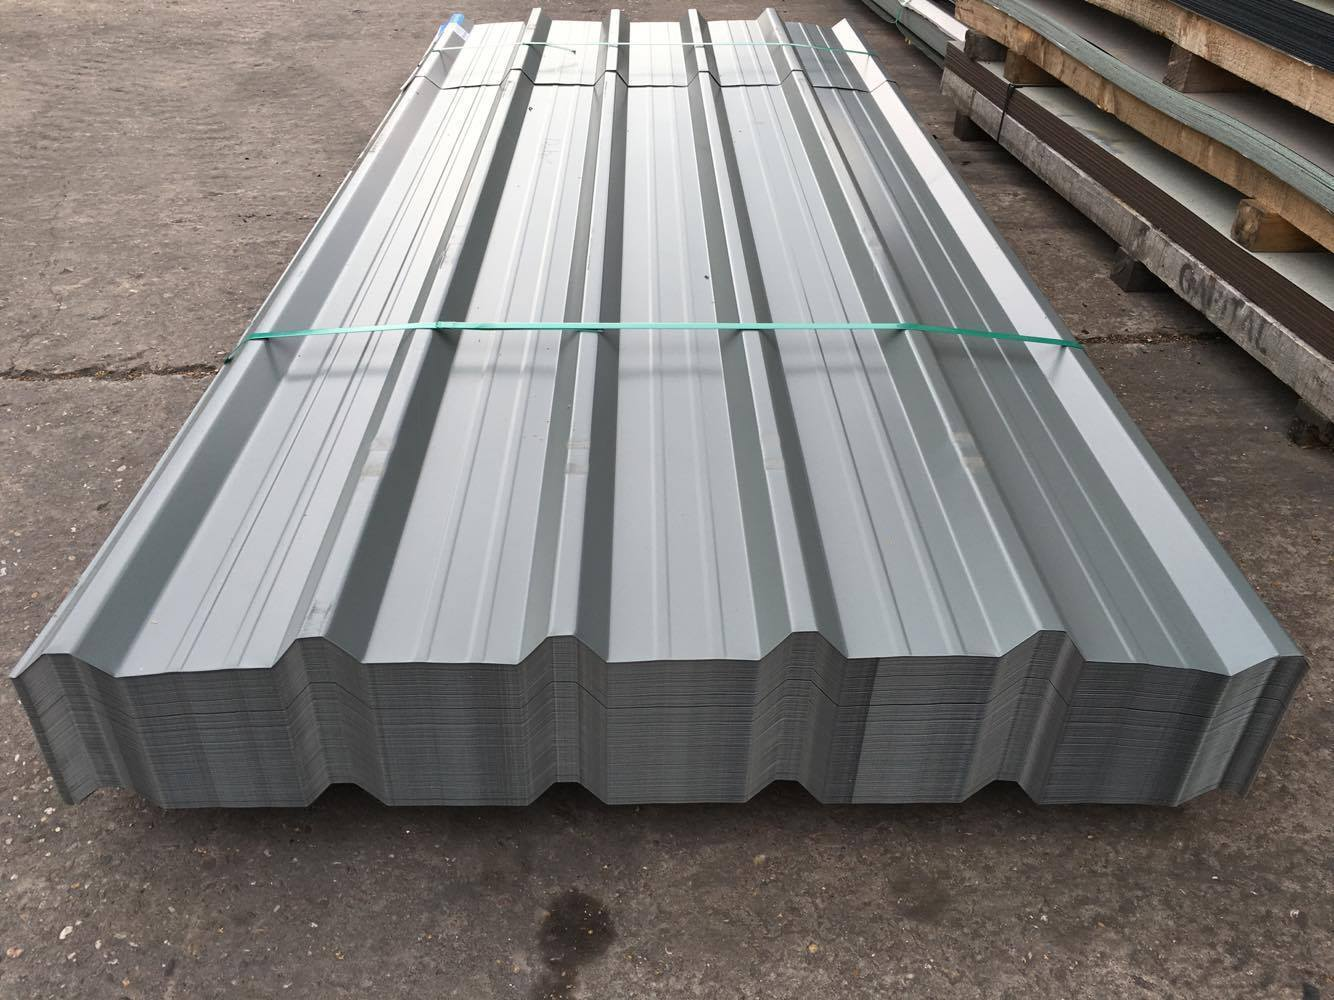 Box Profile Steel Roofing Sheets Merlin Grey Pvc Coated